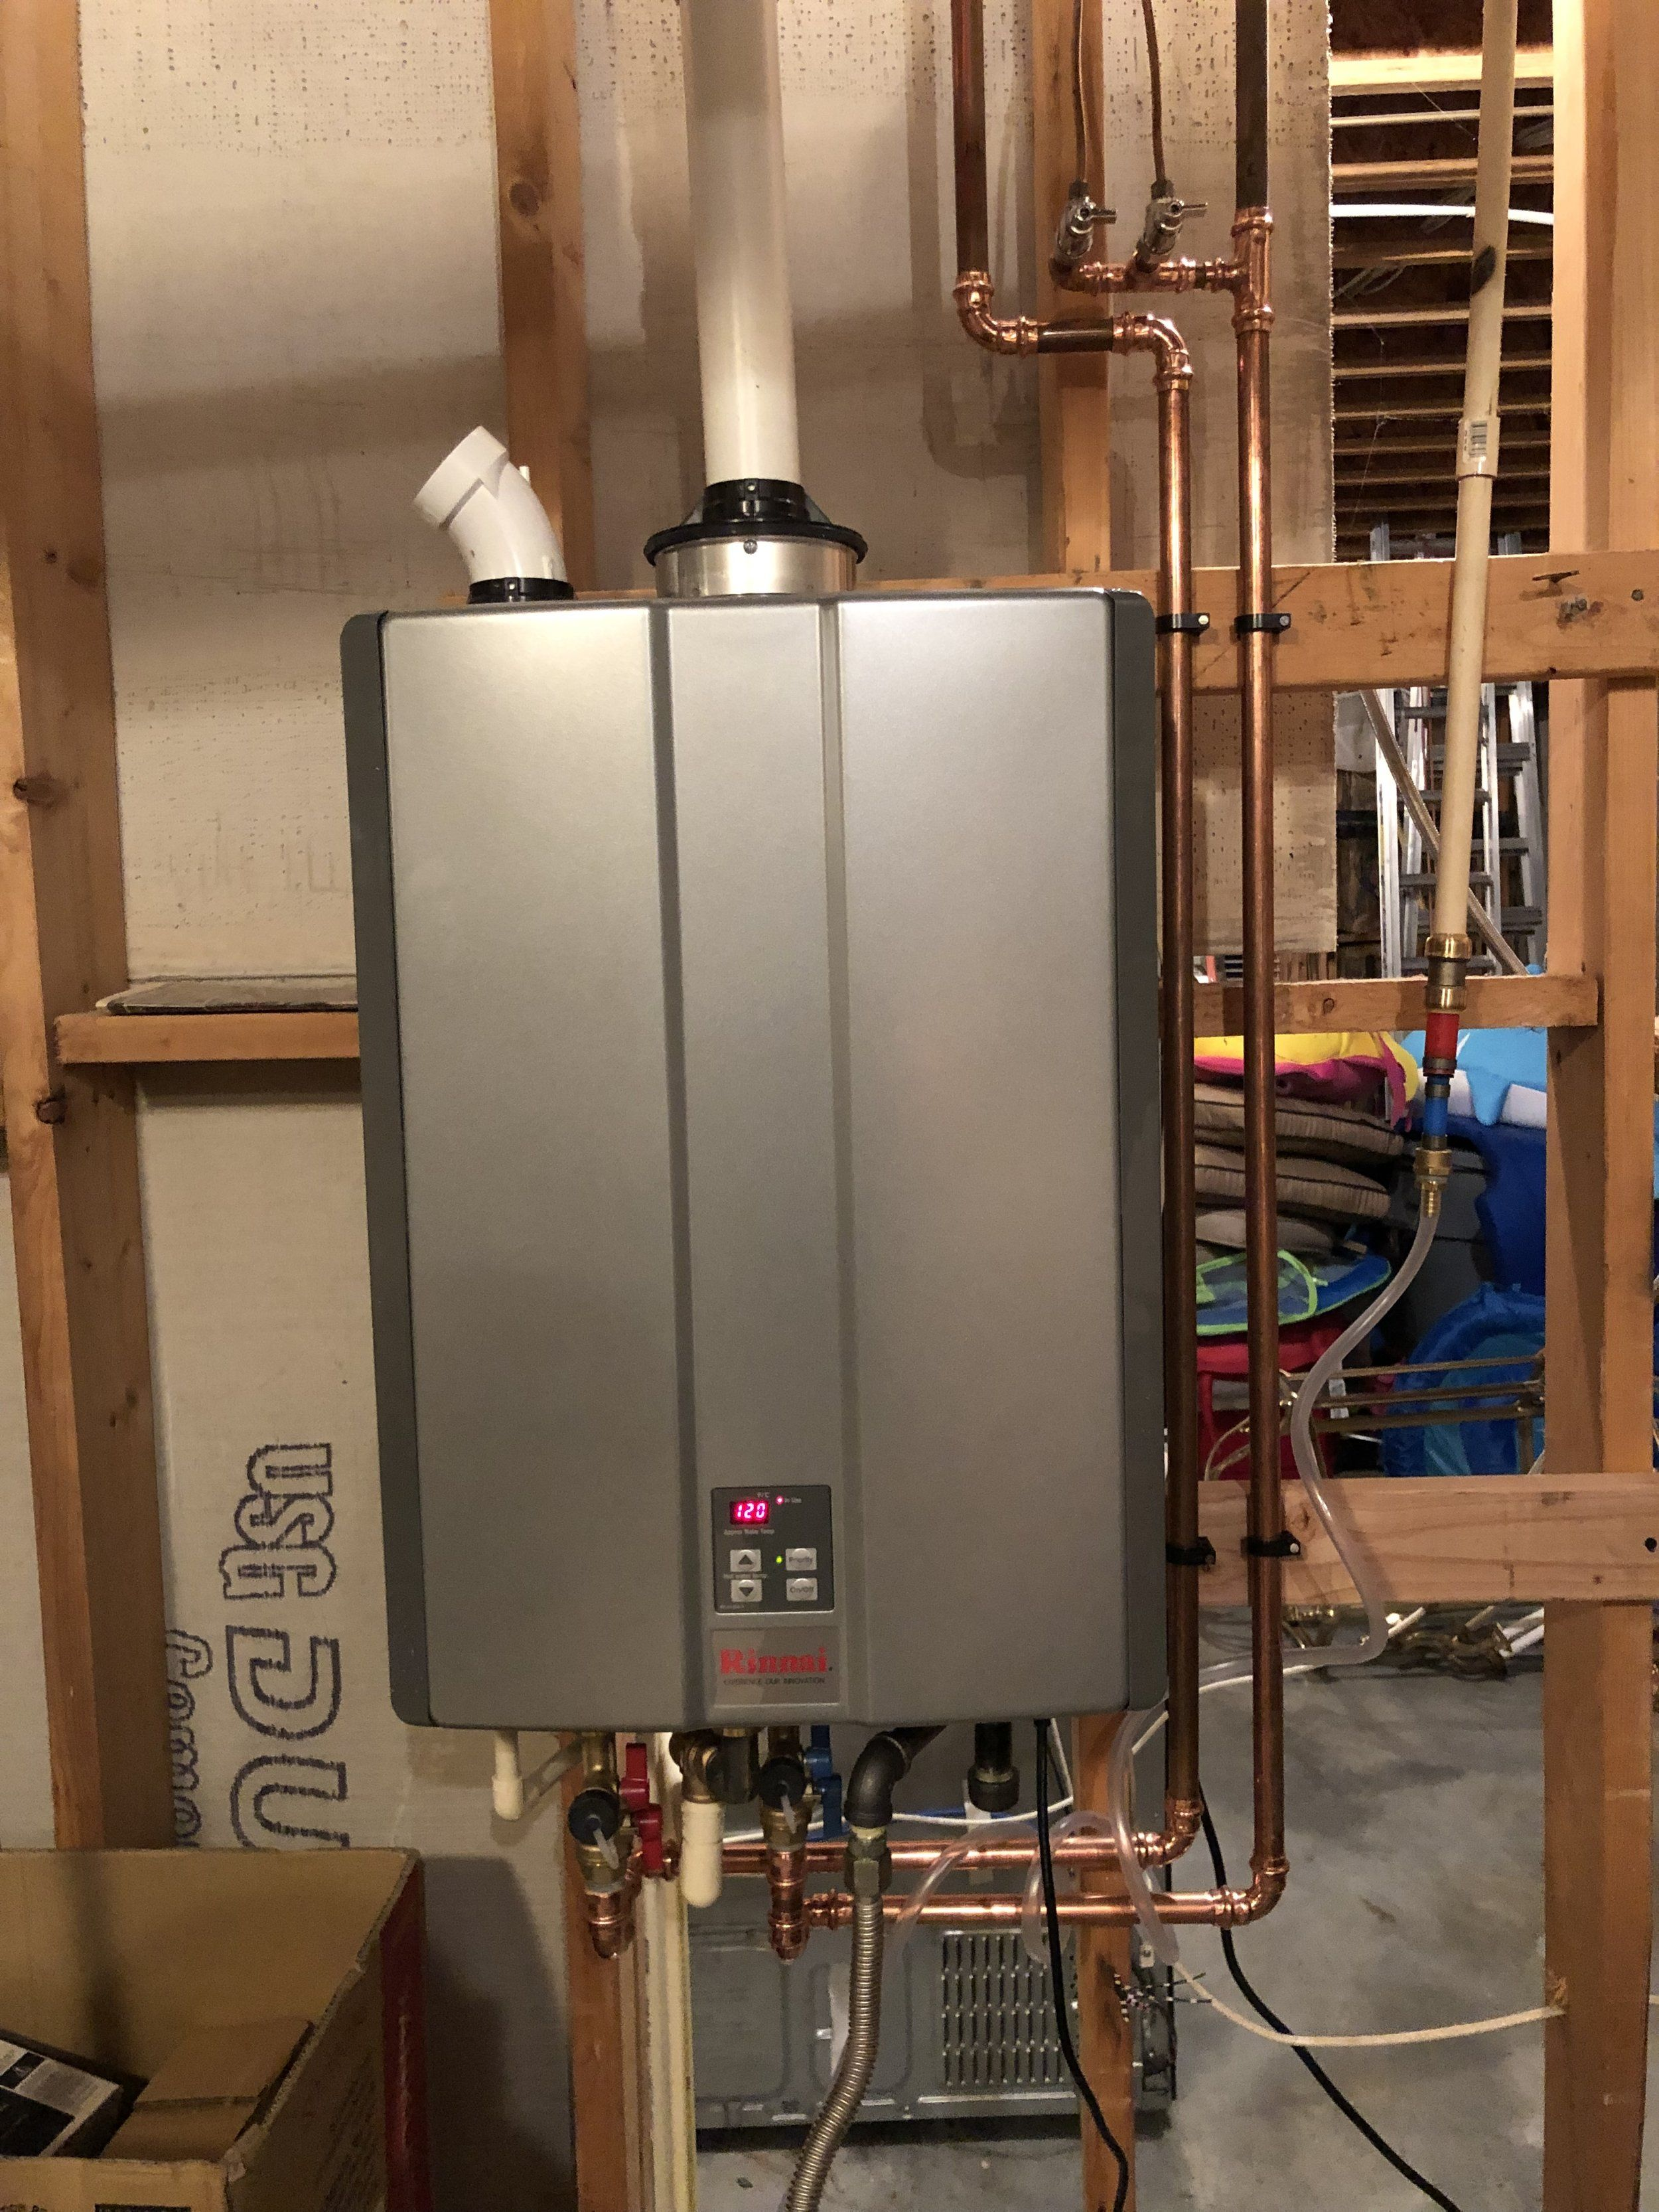 Can I Set The Temperature Higher Than 120 On My Rinnai Tankless Temperatures Tankless Water Heater Canning